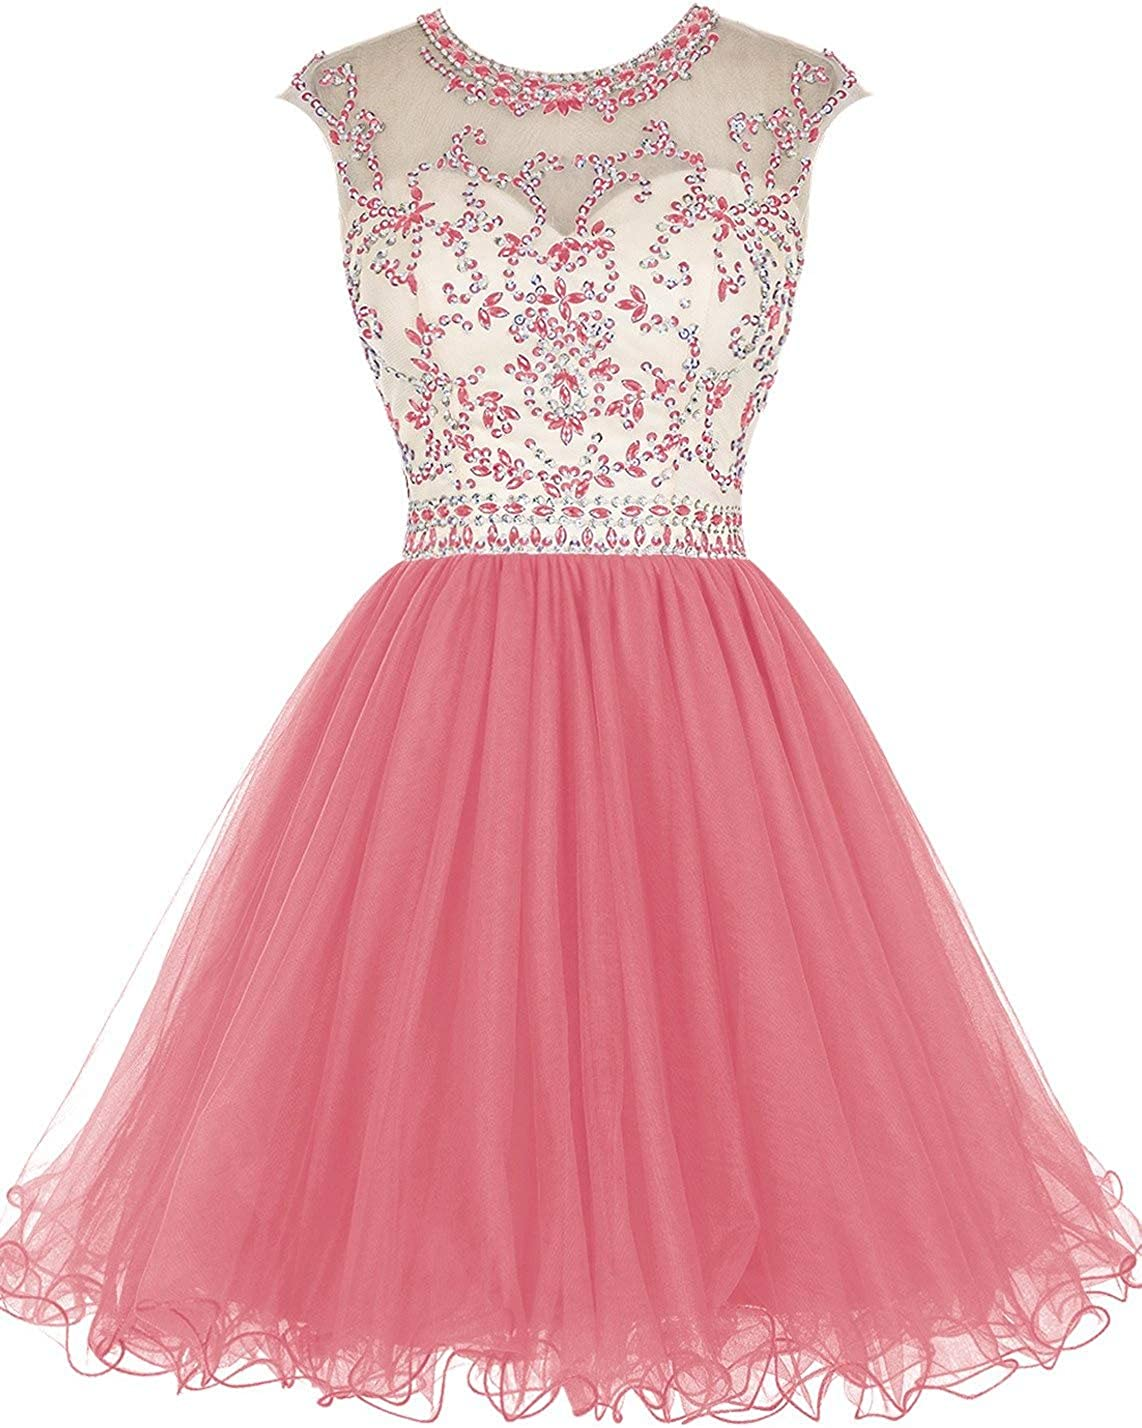 Jingliz Beaded Top Homecoming Dress Short Tulle Hollow Back Prom Cocktail Dresses